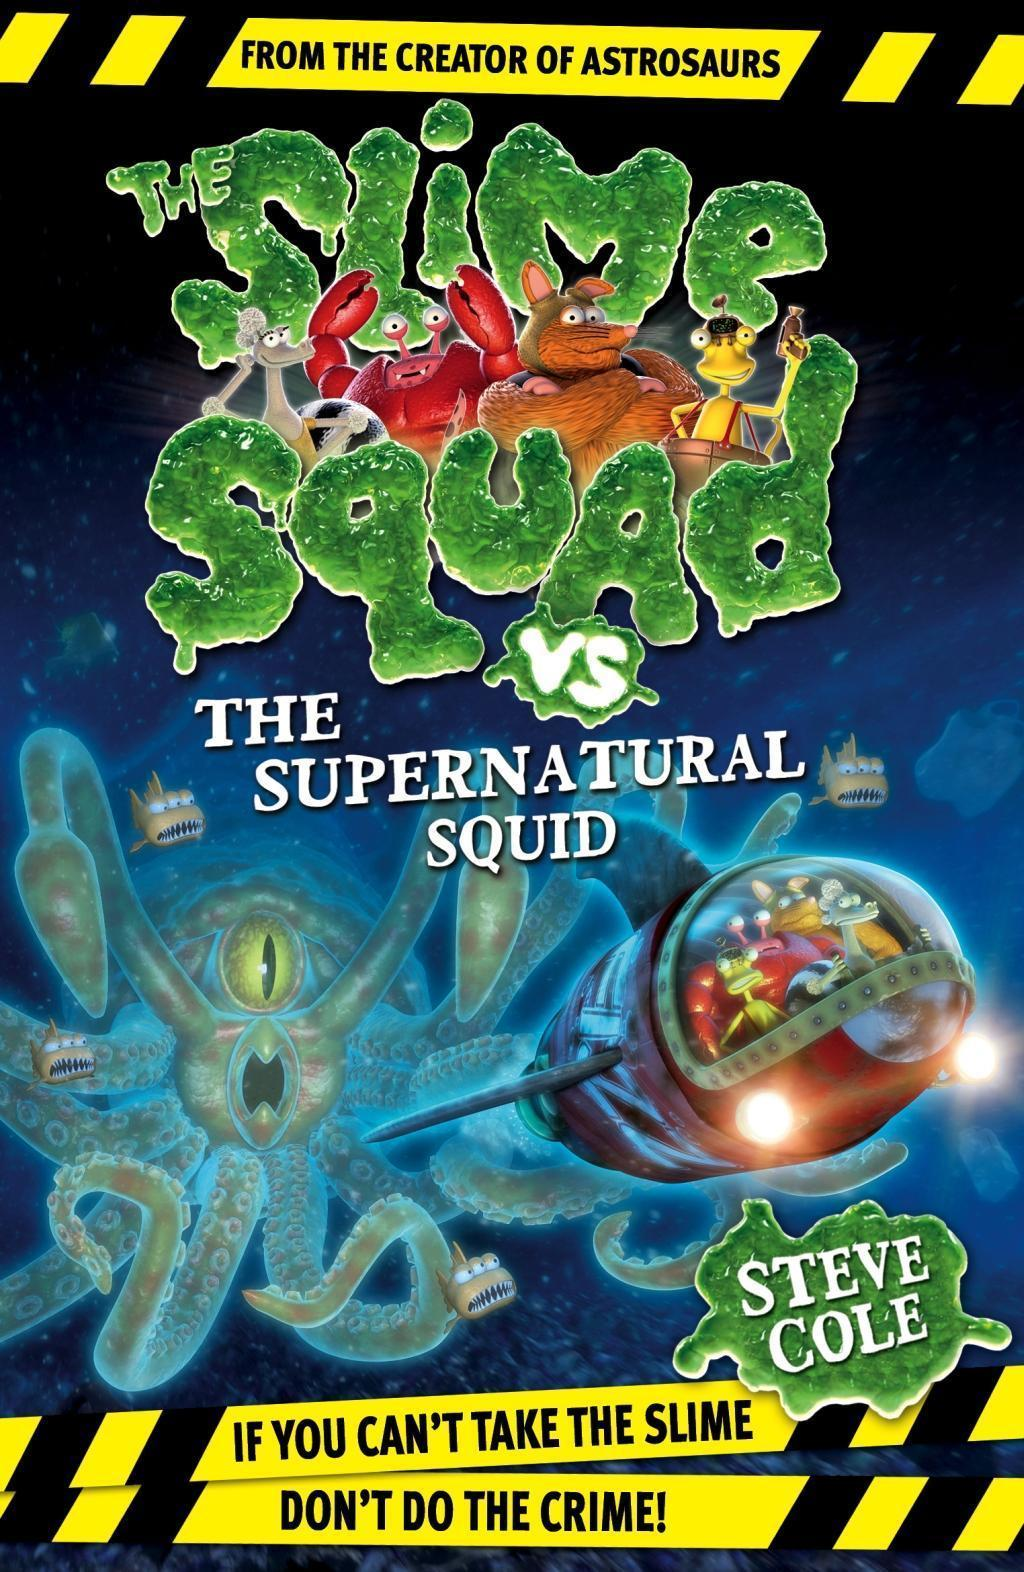 Slime Squad Vs The Supernatural Squid